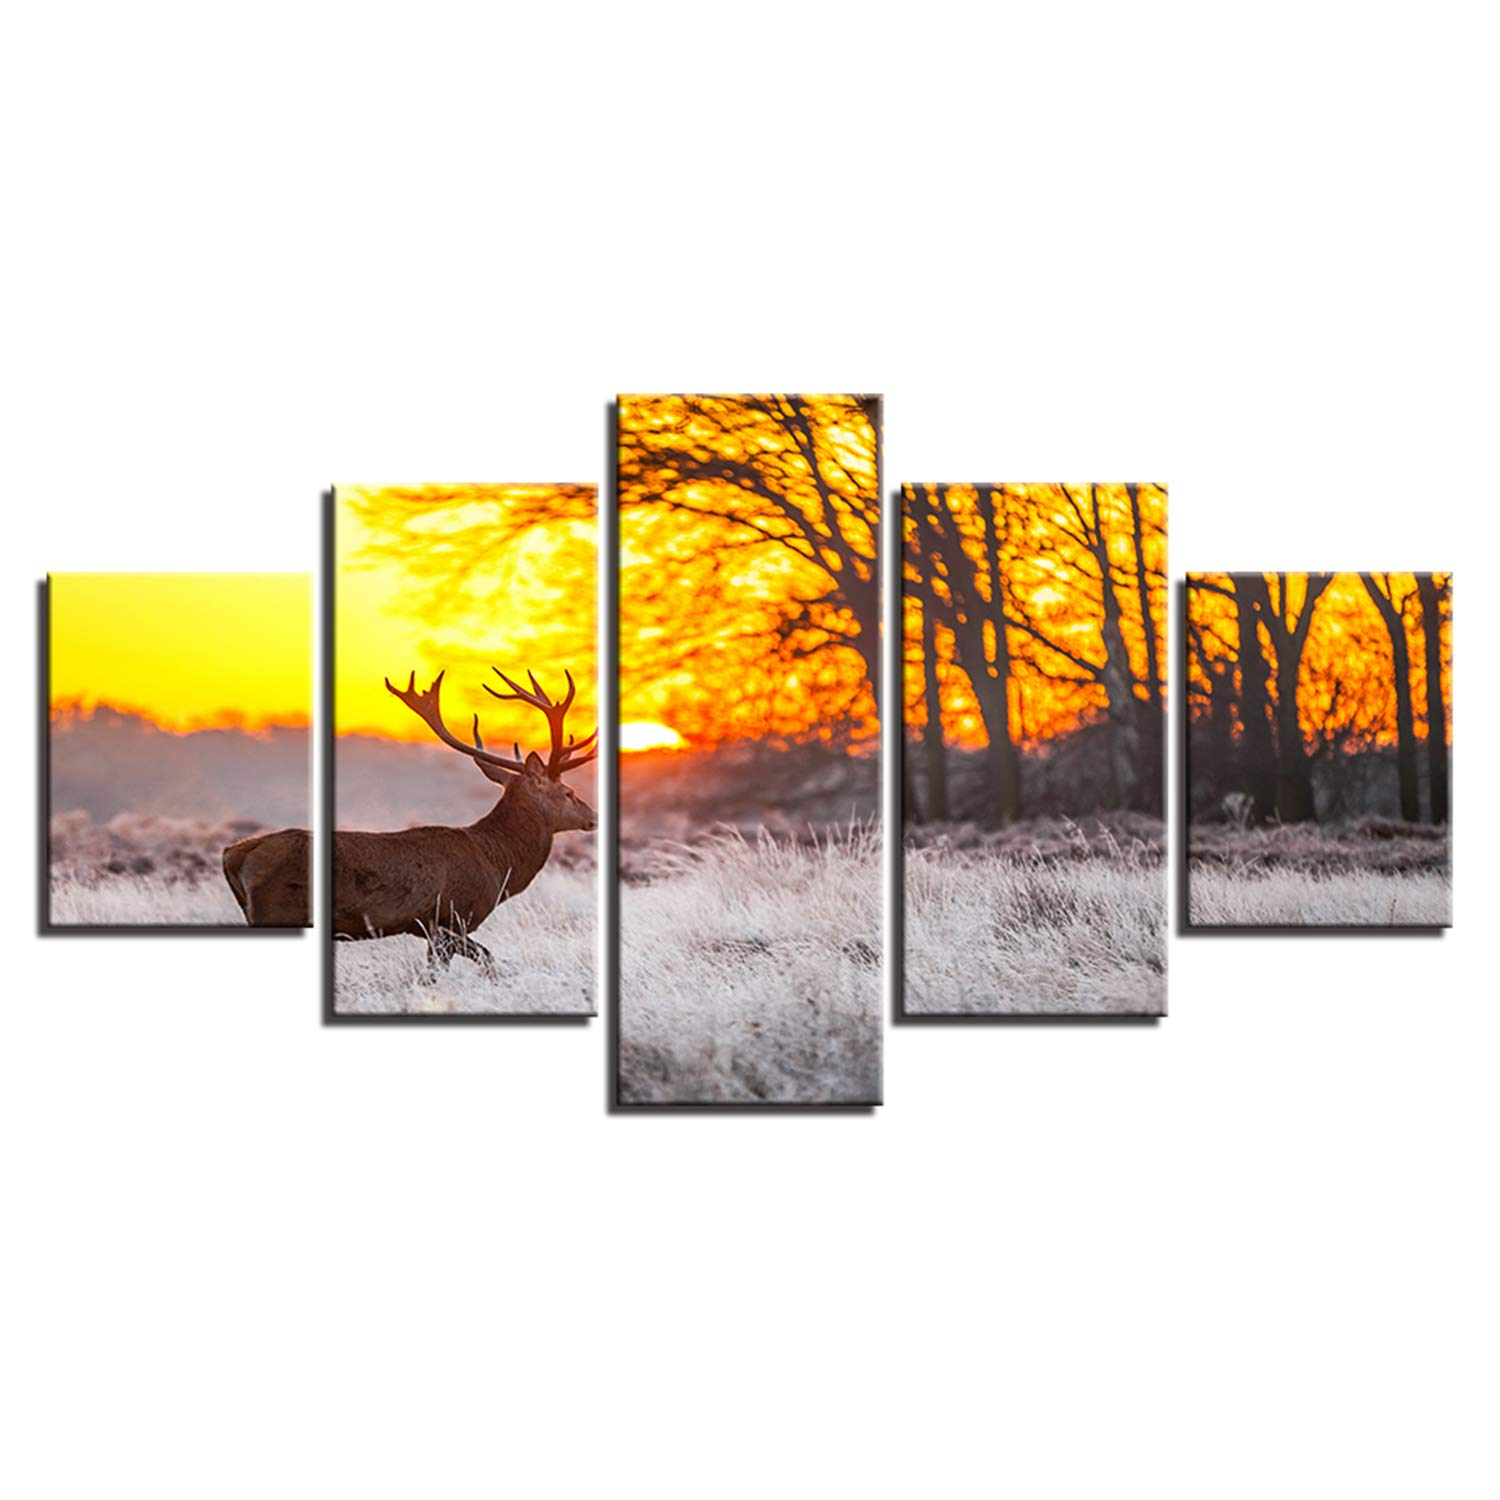 JESC Canvas Home Decor Paintings Wall Art 5 Pieces Winter Sunset Deer Posters Living Room HD Prints Forest Animals Pictures Framework